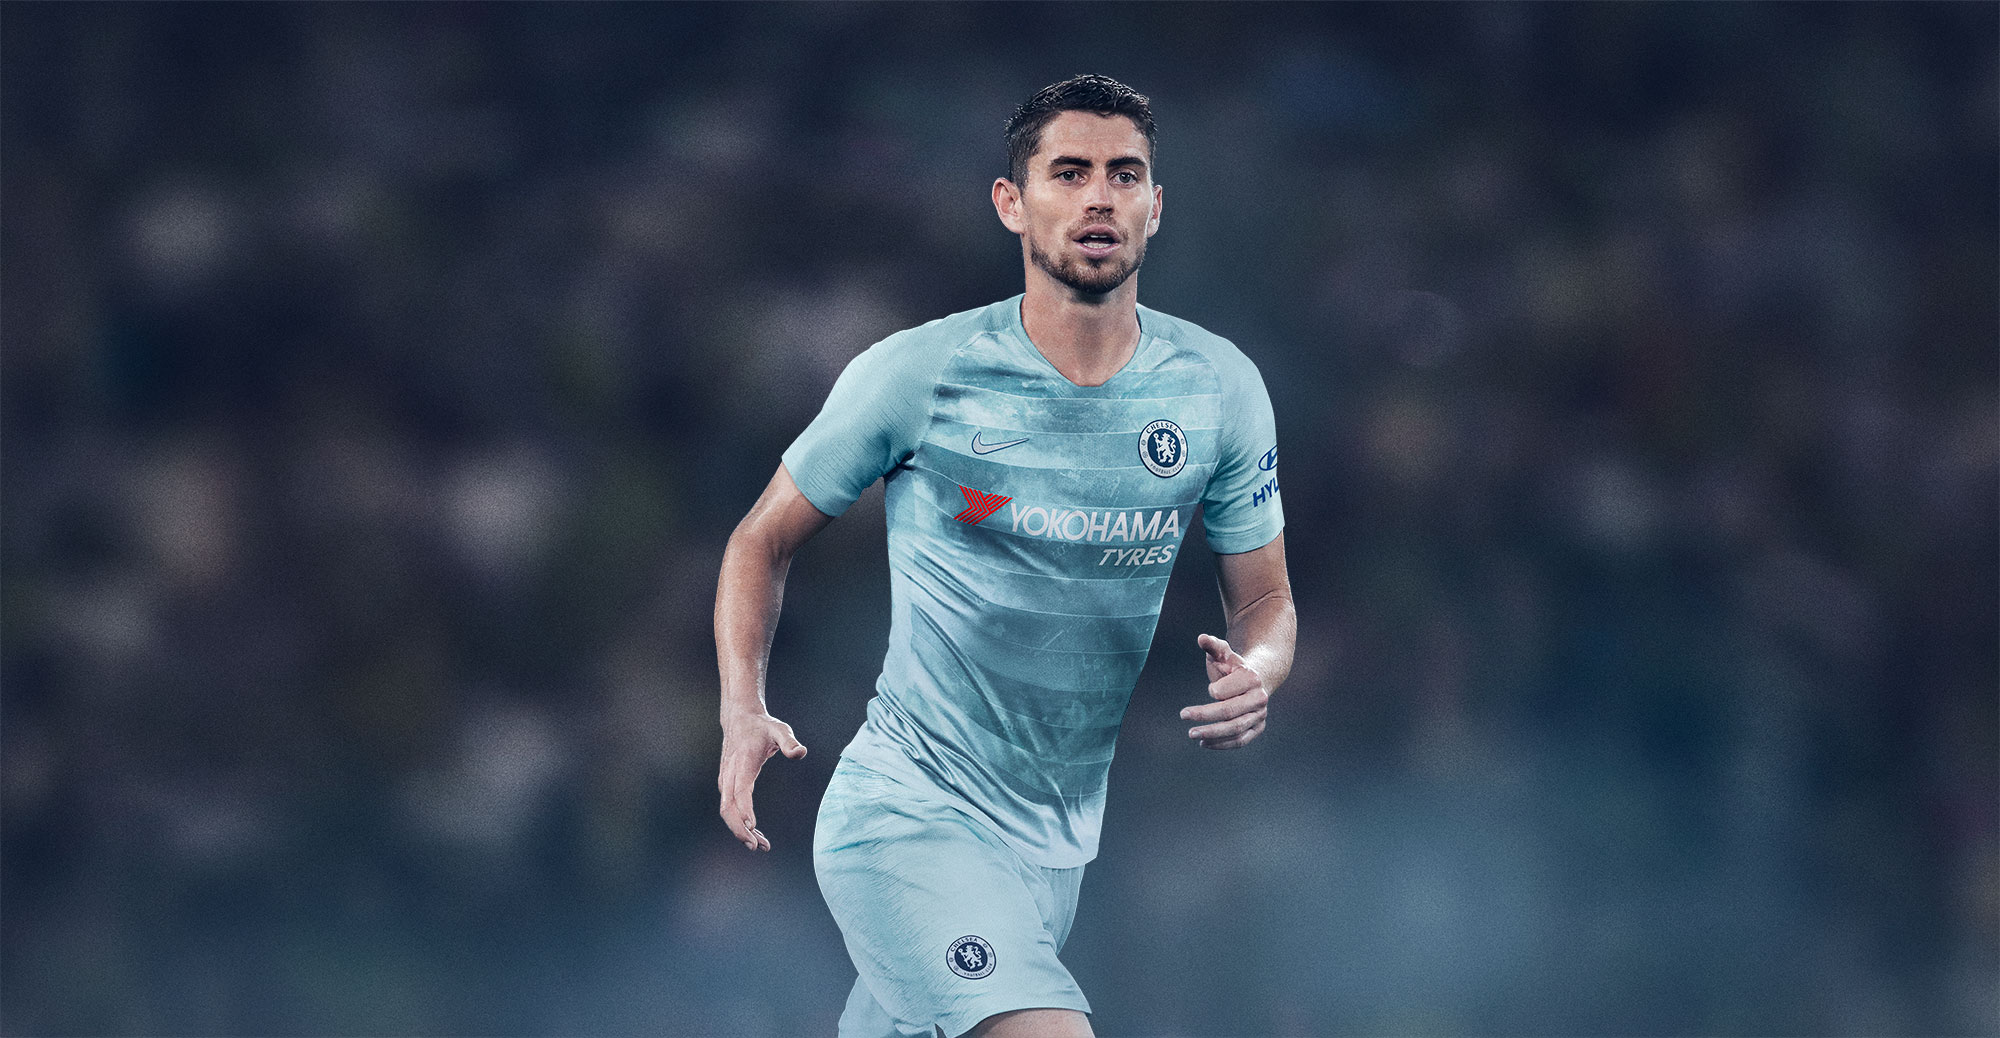 Image via Nike. Nike are incorporating NikeConnect technology in Chelsea s  third kit for the 2018-19 ... 8fc691bb6